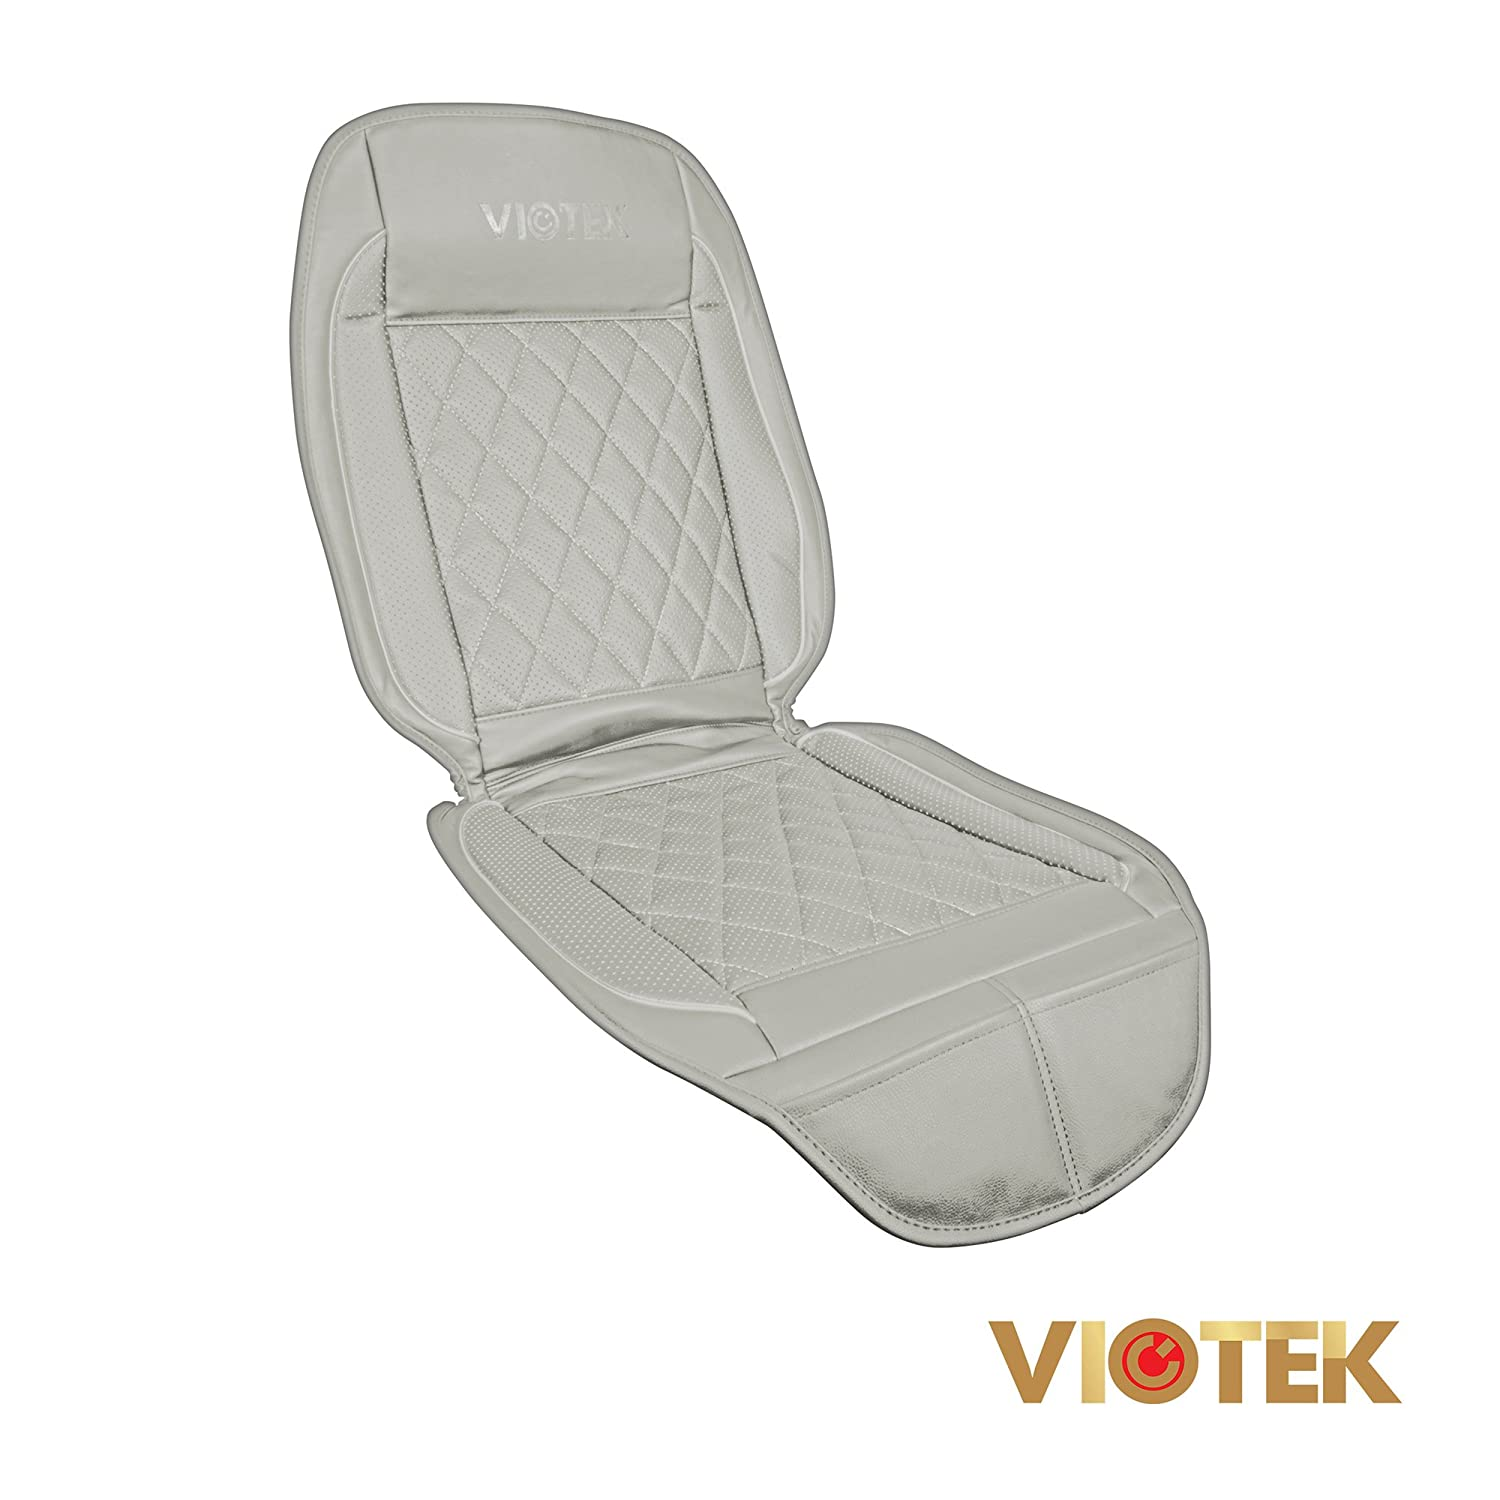 comfort heated cooled car seat cover with wireless remote grey ebay. Black Bedroom Furniture Sets. Home Design Ideas